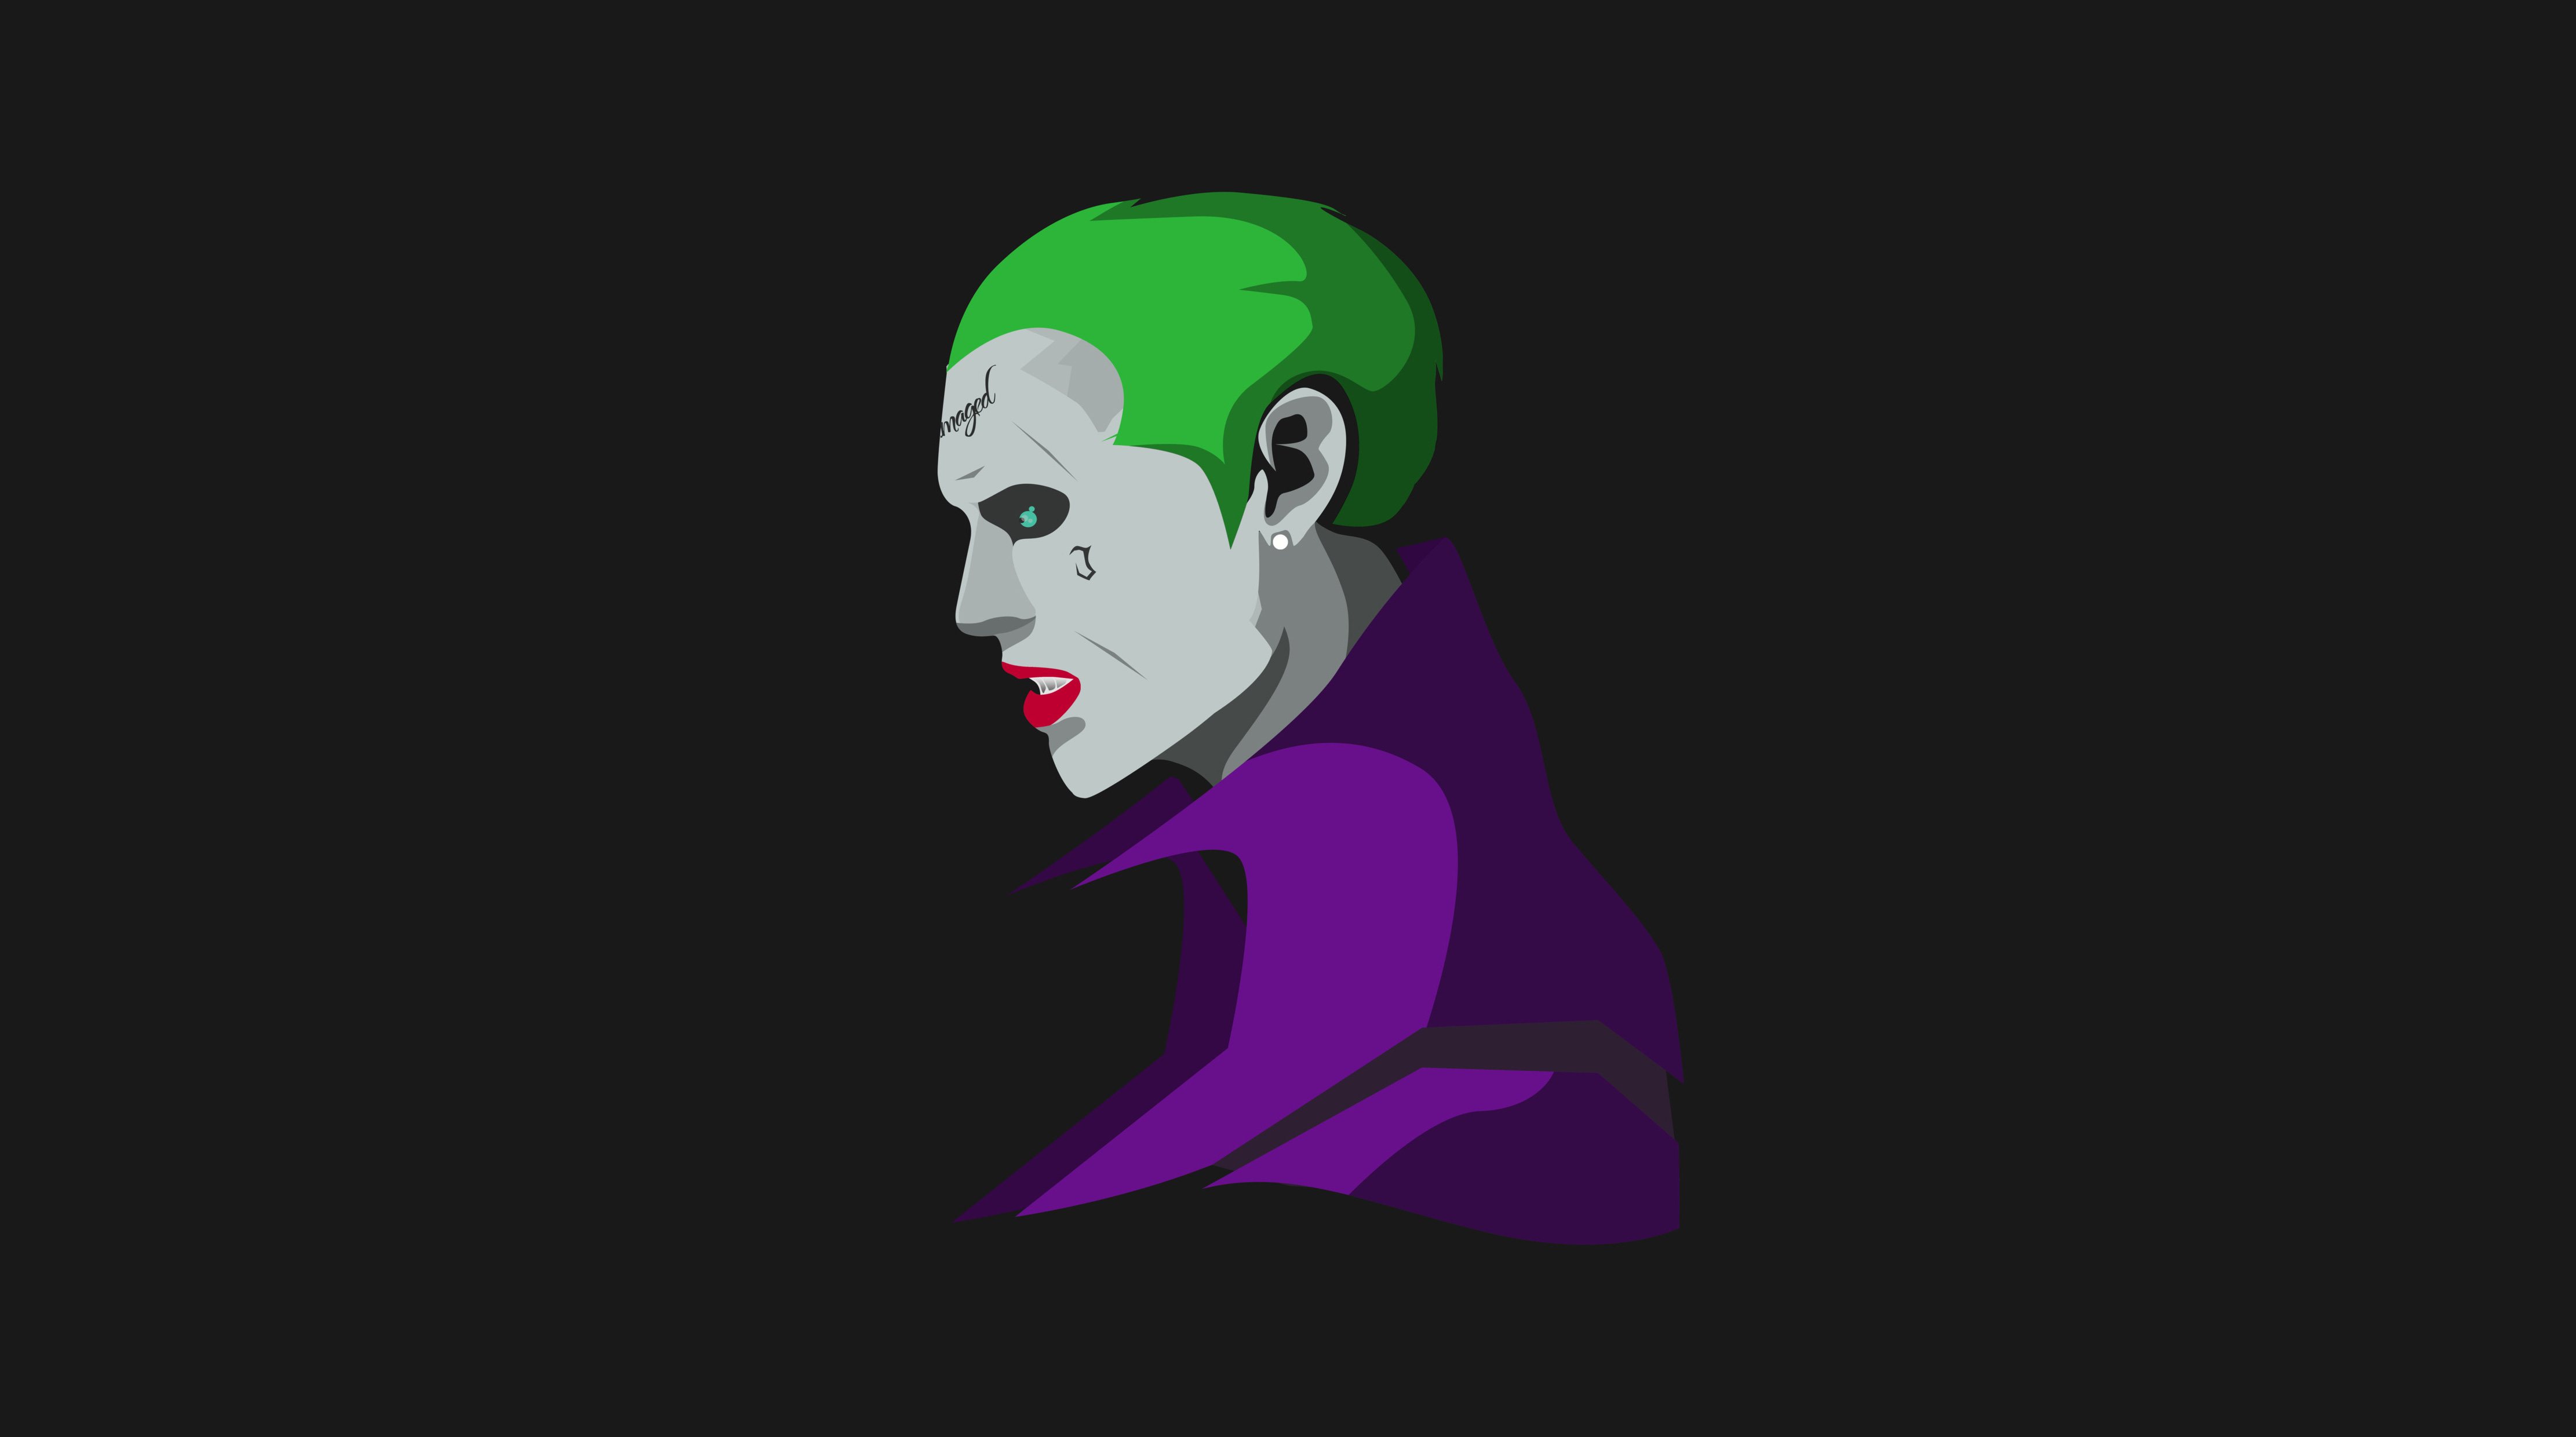 Wallpaper Macbook Joker Wallpaper Hd For Android